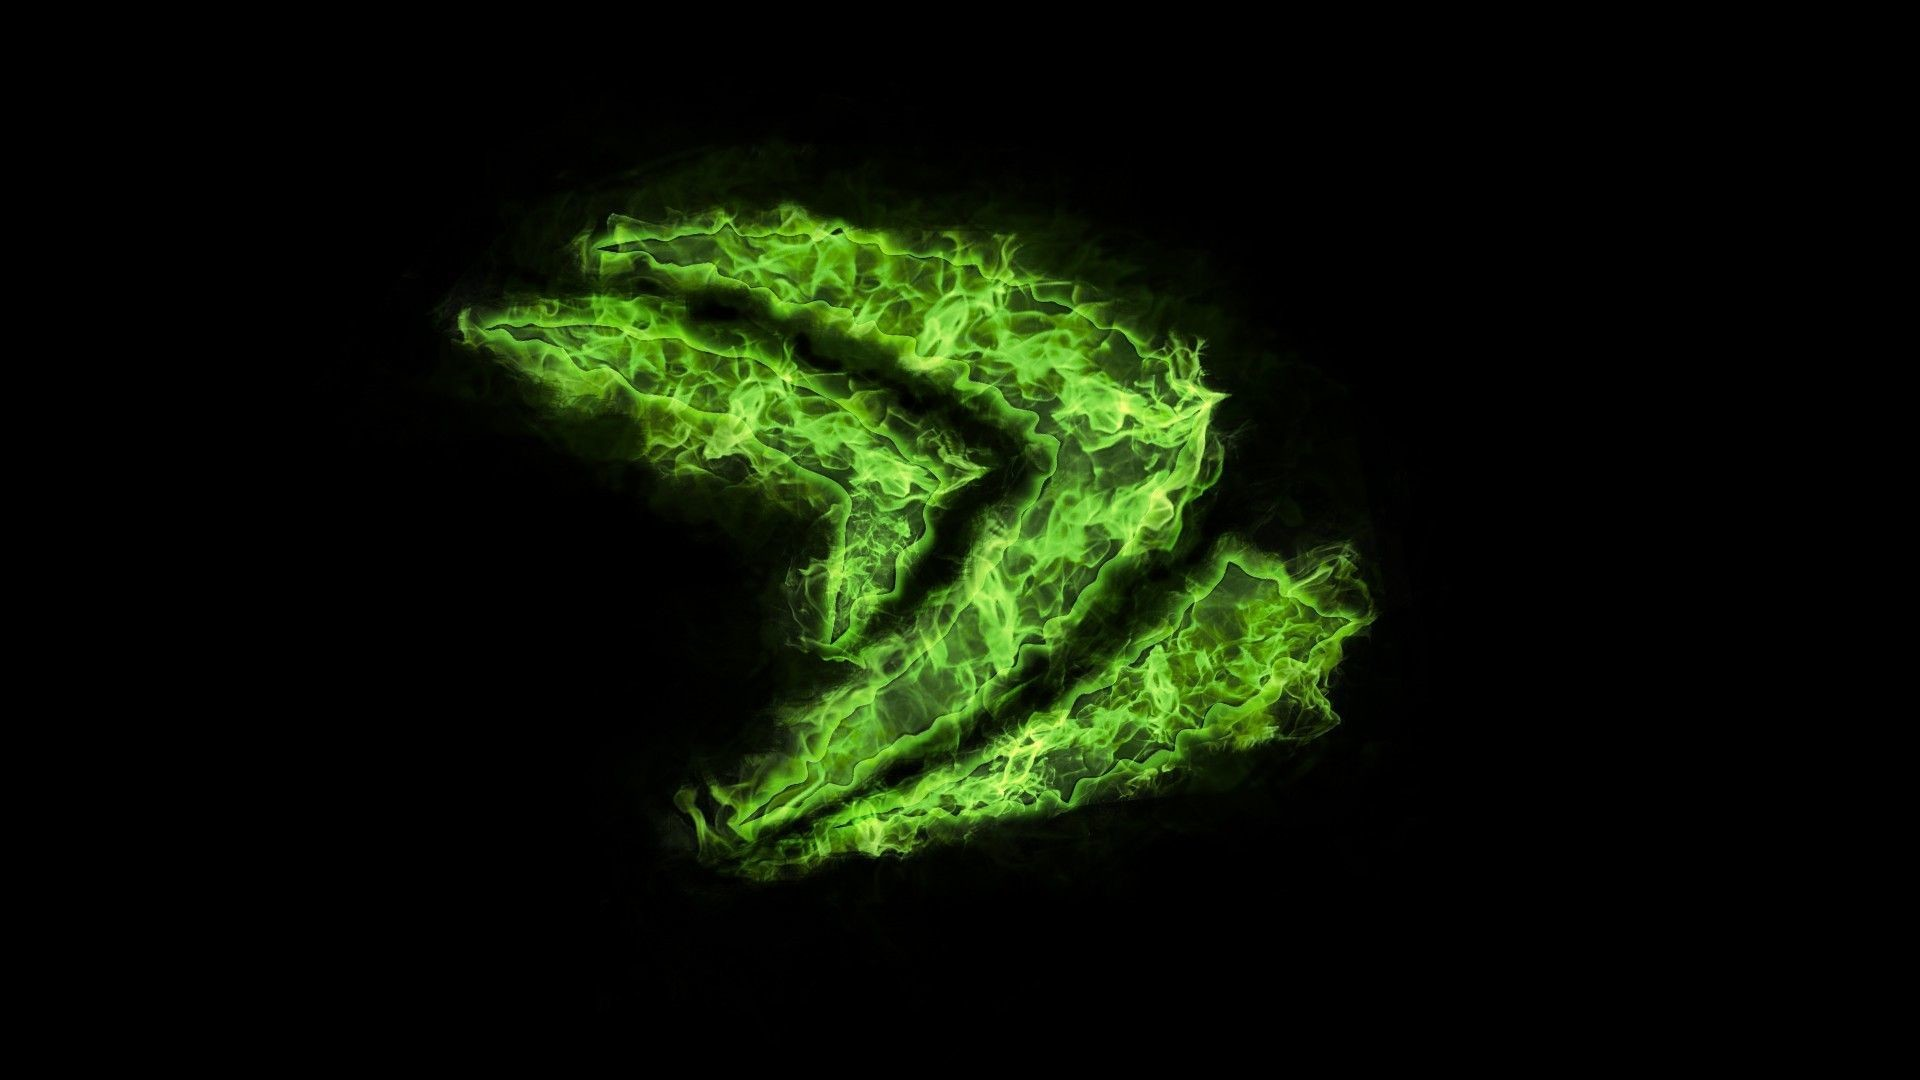 Logo Nvidia green flame wallpapers and images – wallpapers .